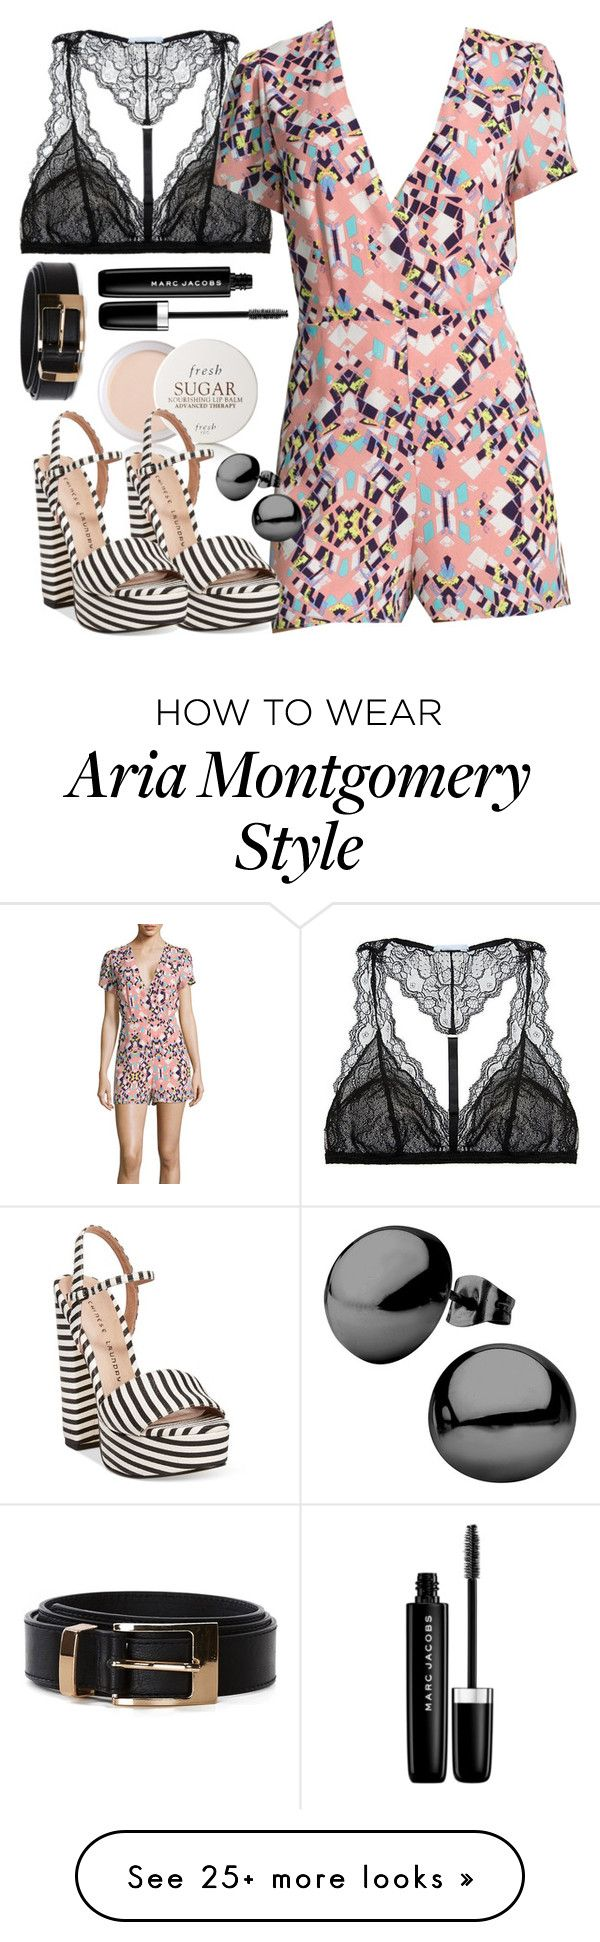 """Aria Montgomery inspired summer outfit"" by liarsstyle on Polyvore featuring Fresh, Eberjey, I Heart Ronson, Chinese Laundry and Marc Jacobs"